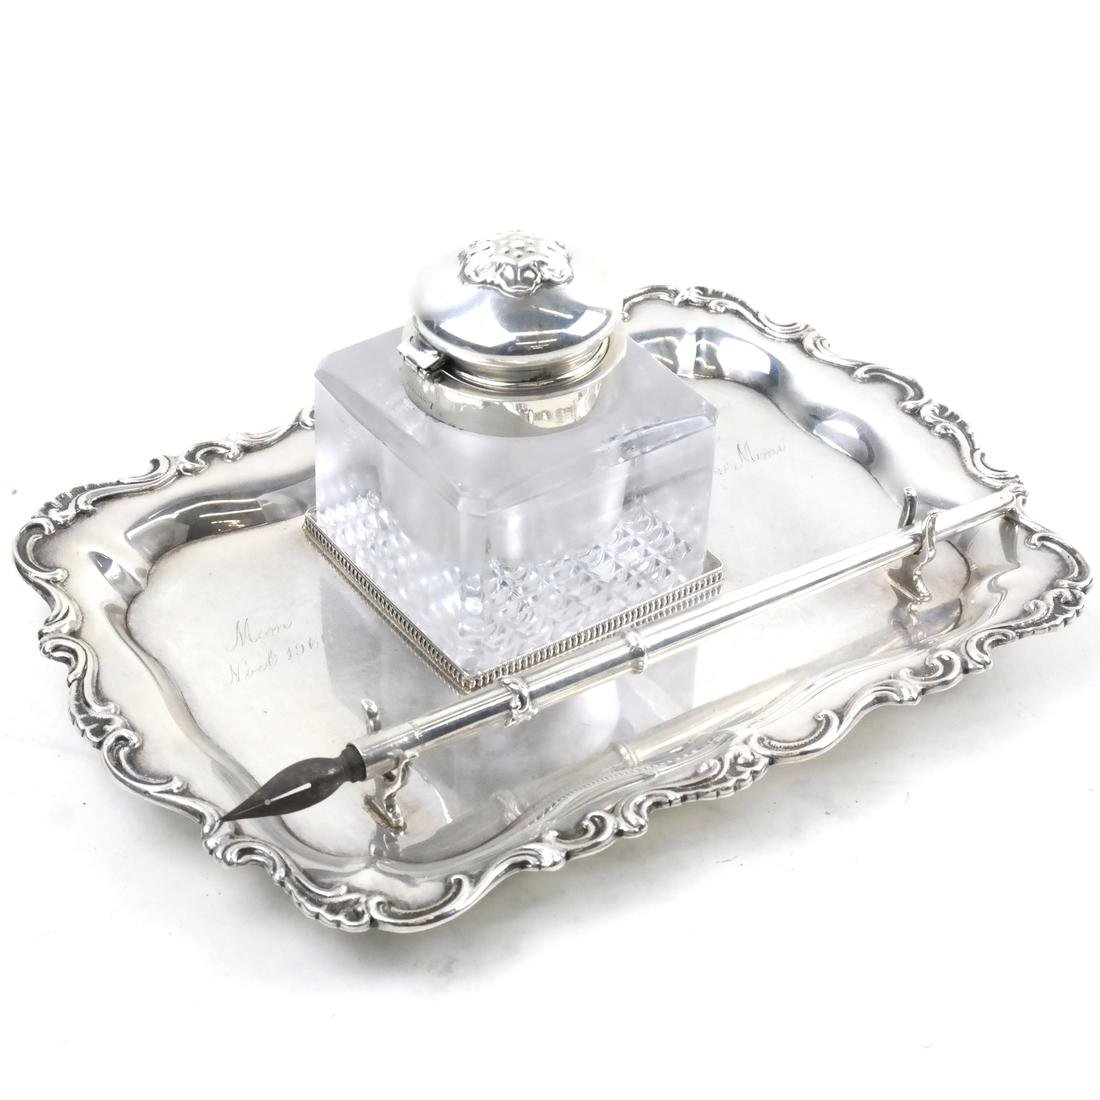 American Sterling and Glass Inkstand with Pen